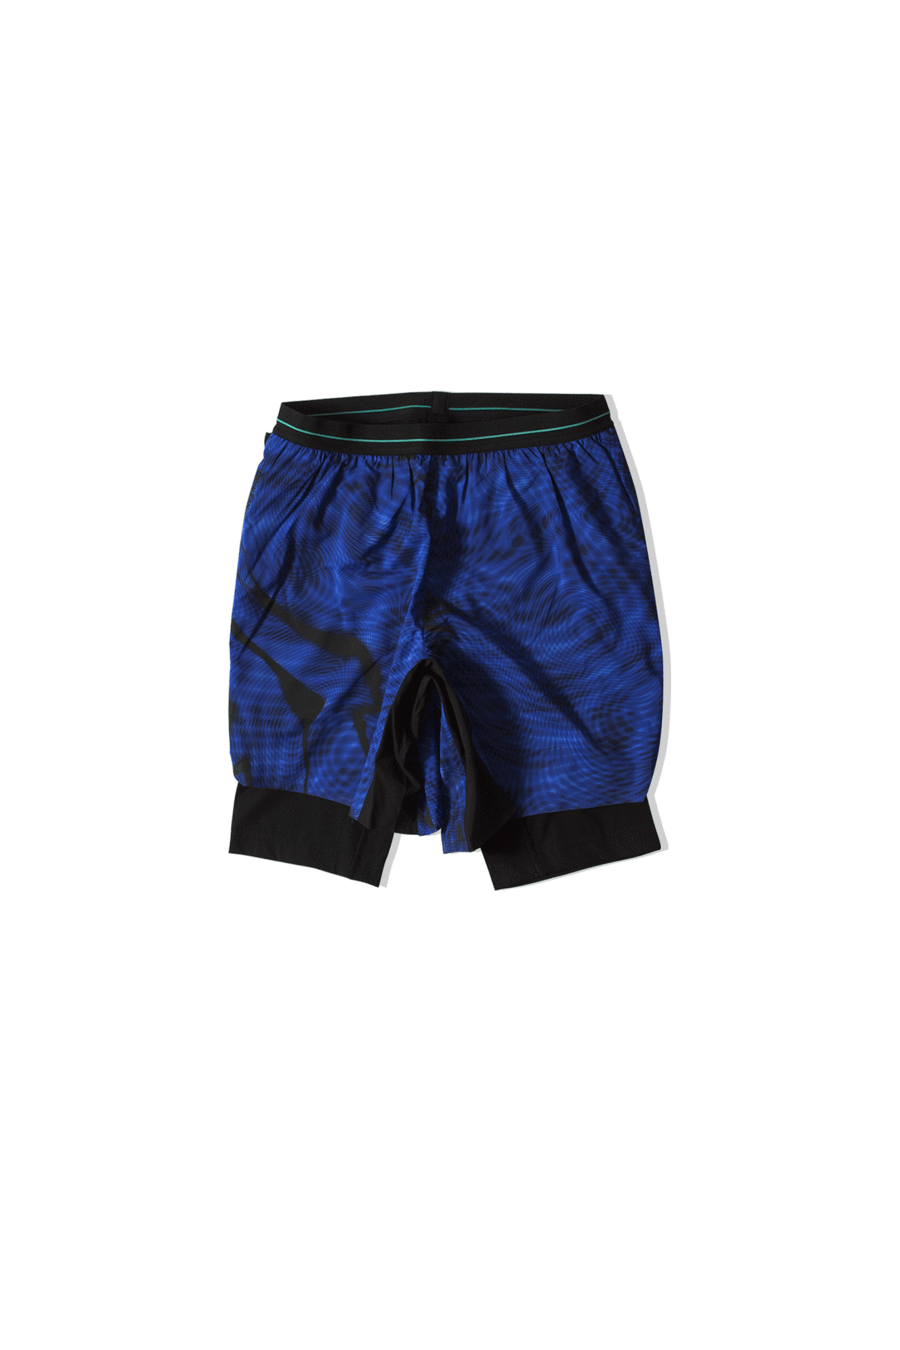 White Mountaineering x Adidas Originals Shorts Terrex WM 2 In 1 Short Blue EB4573#000#BLU#S - One Block Down